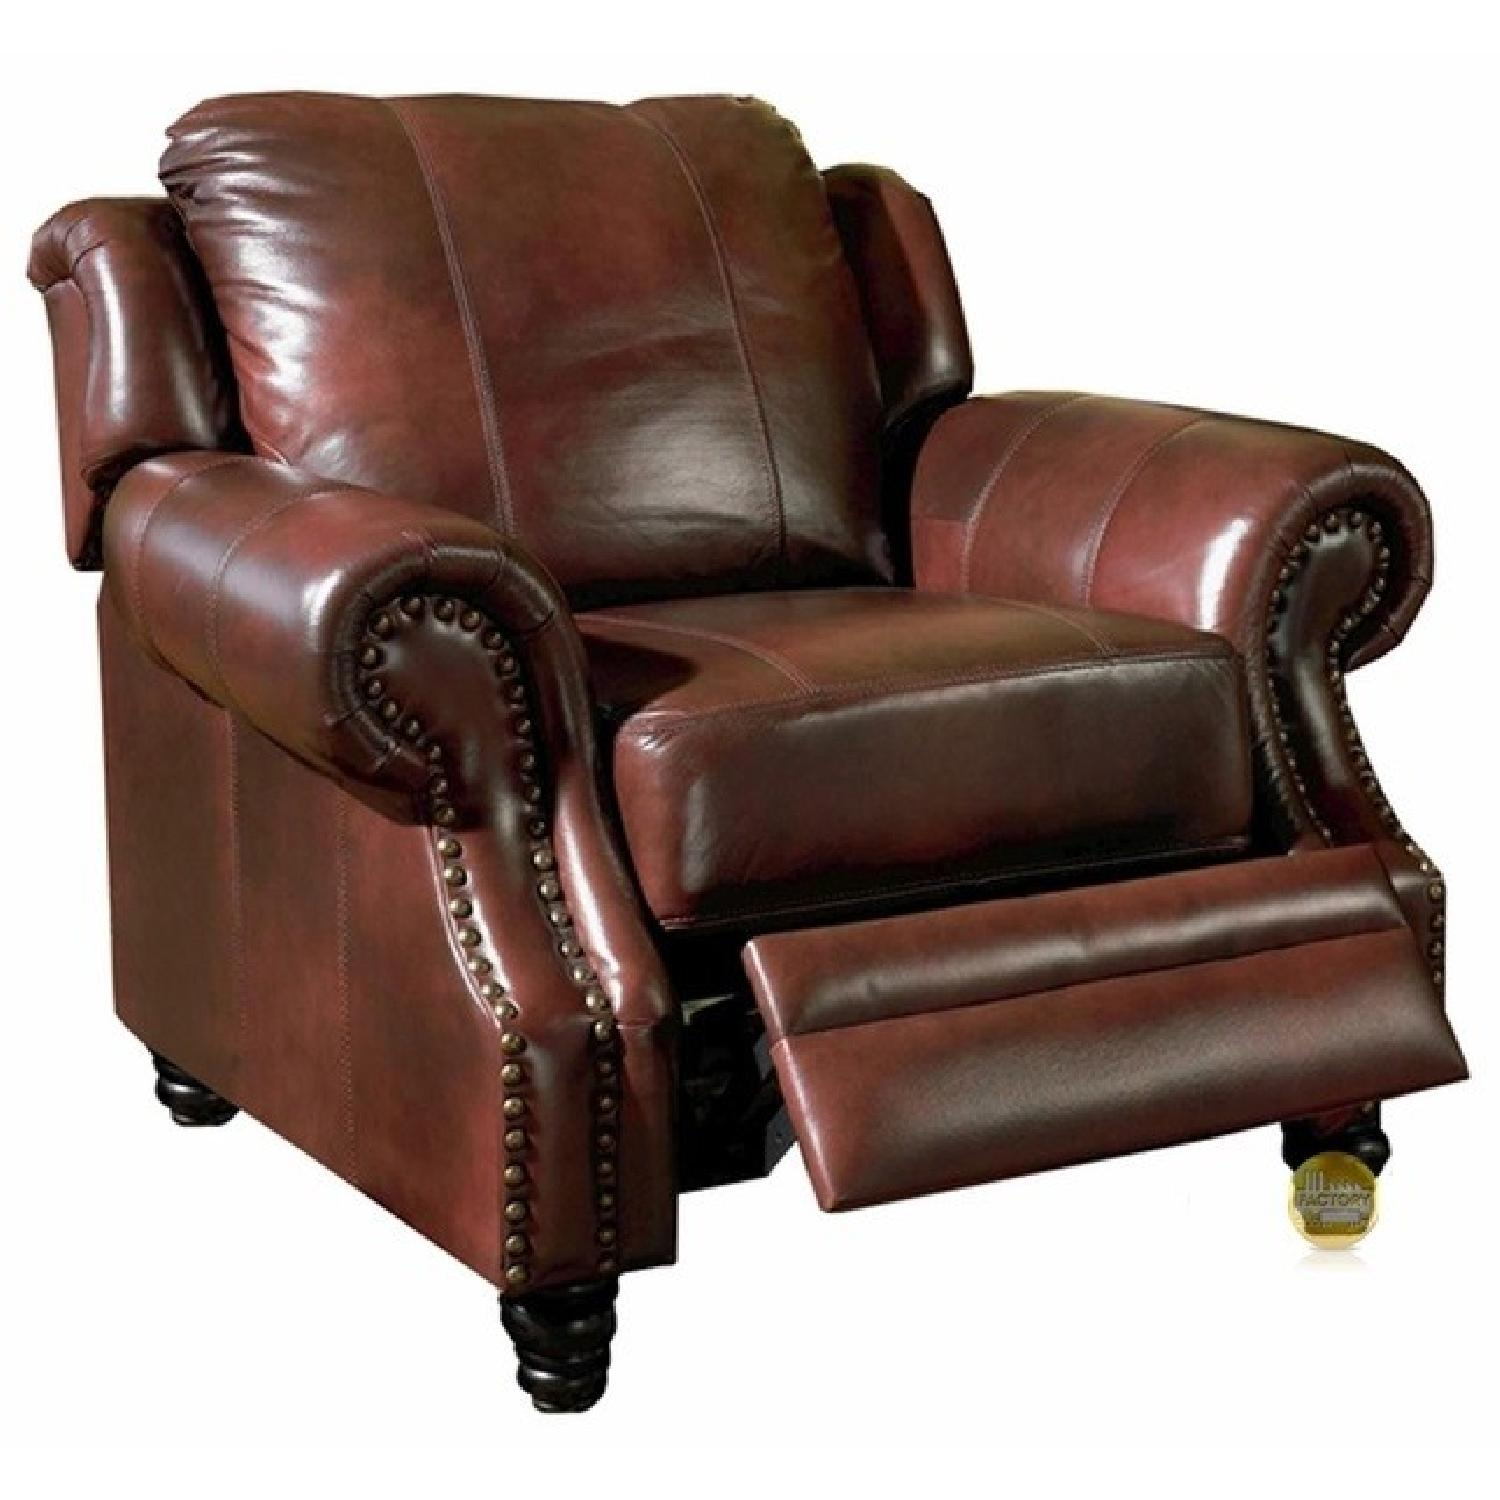 PushBack Recliner Chair in Burgundy Leather Match  AptDeco